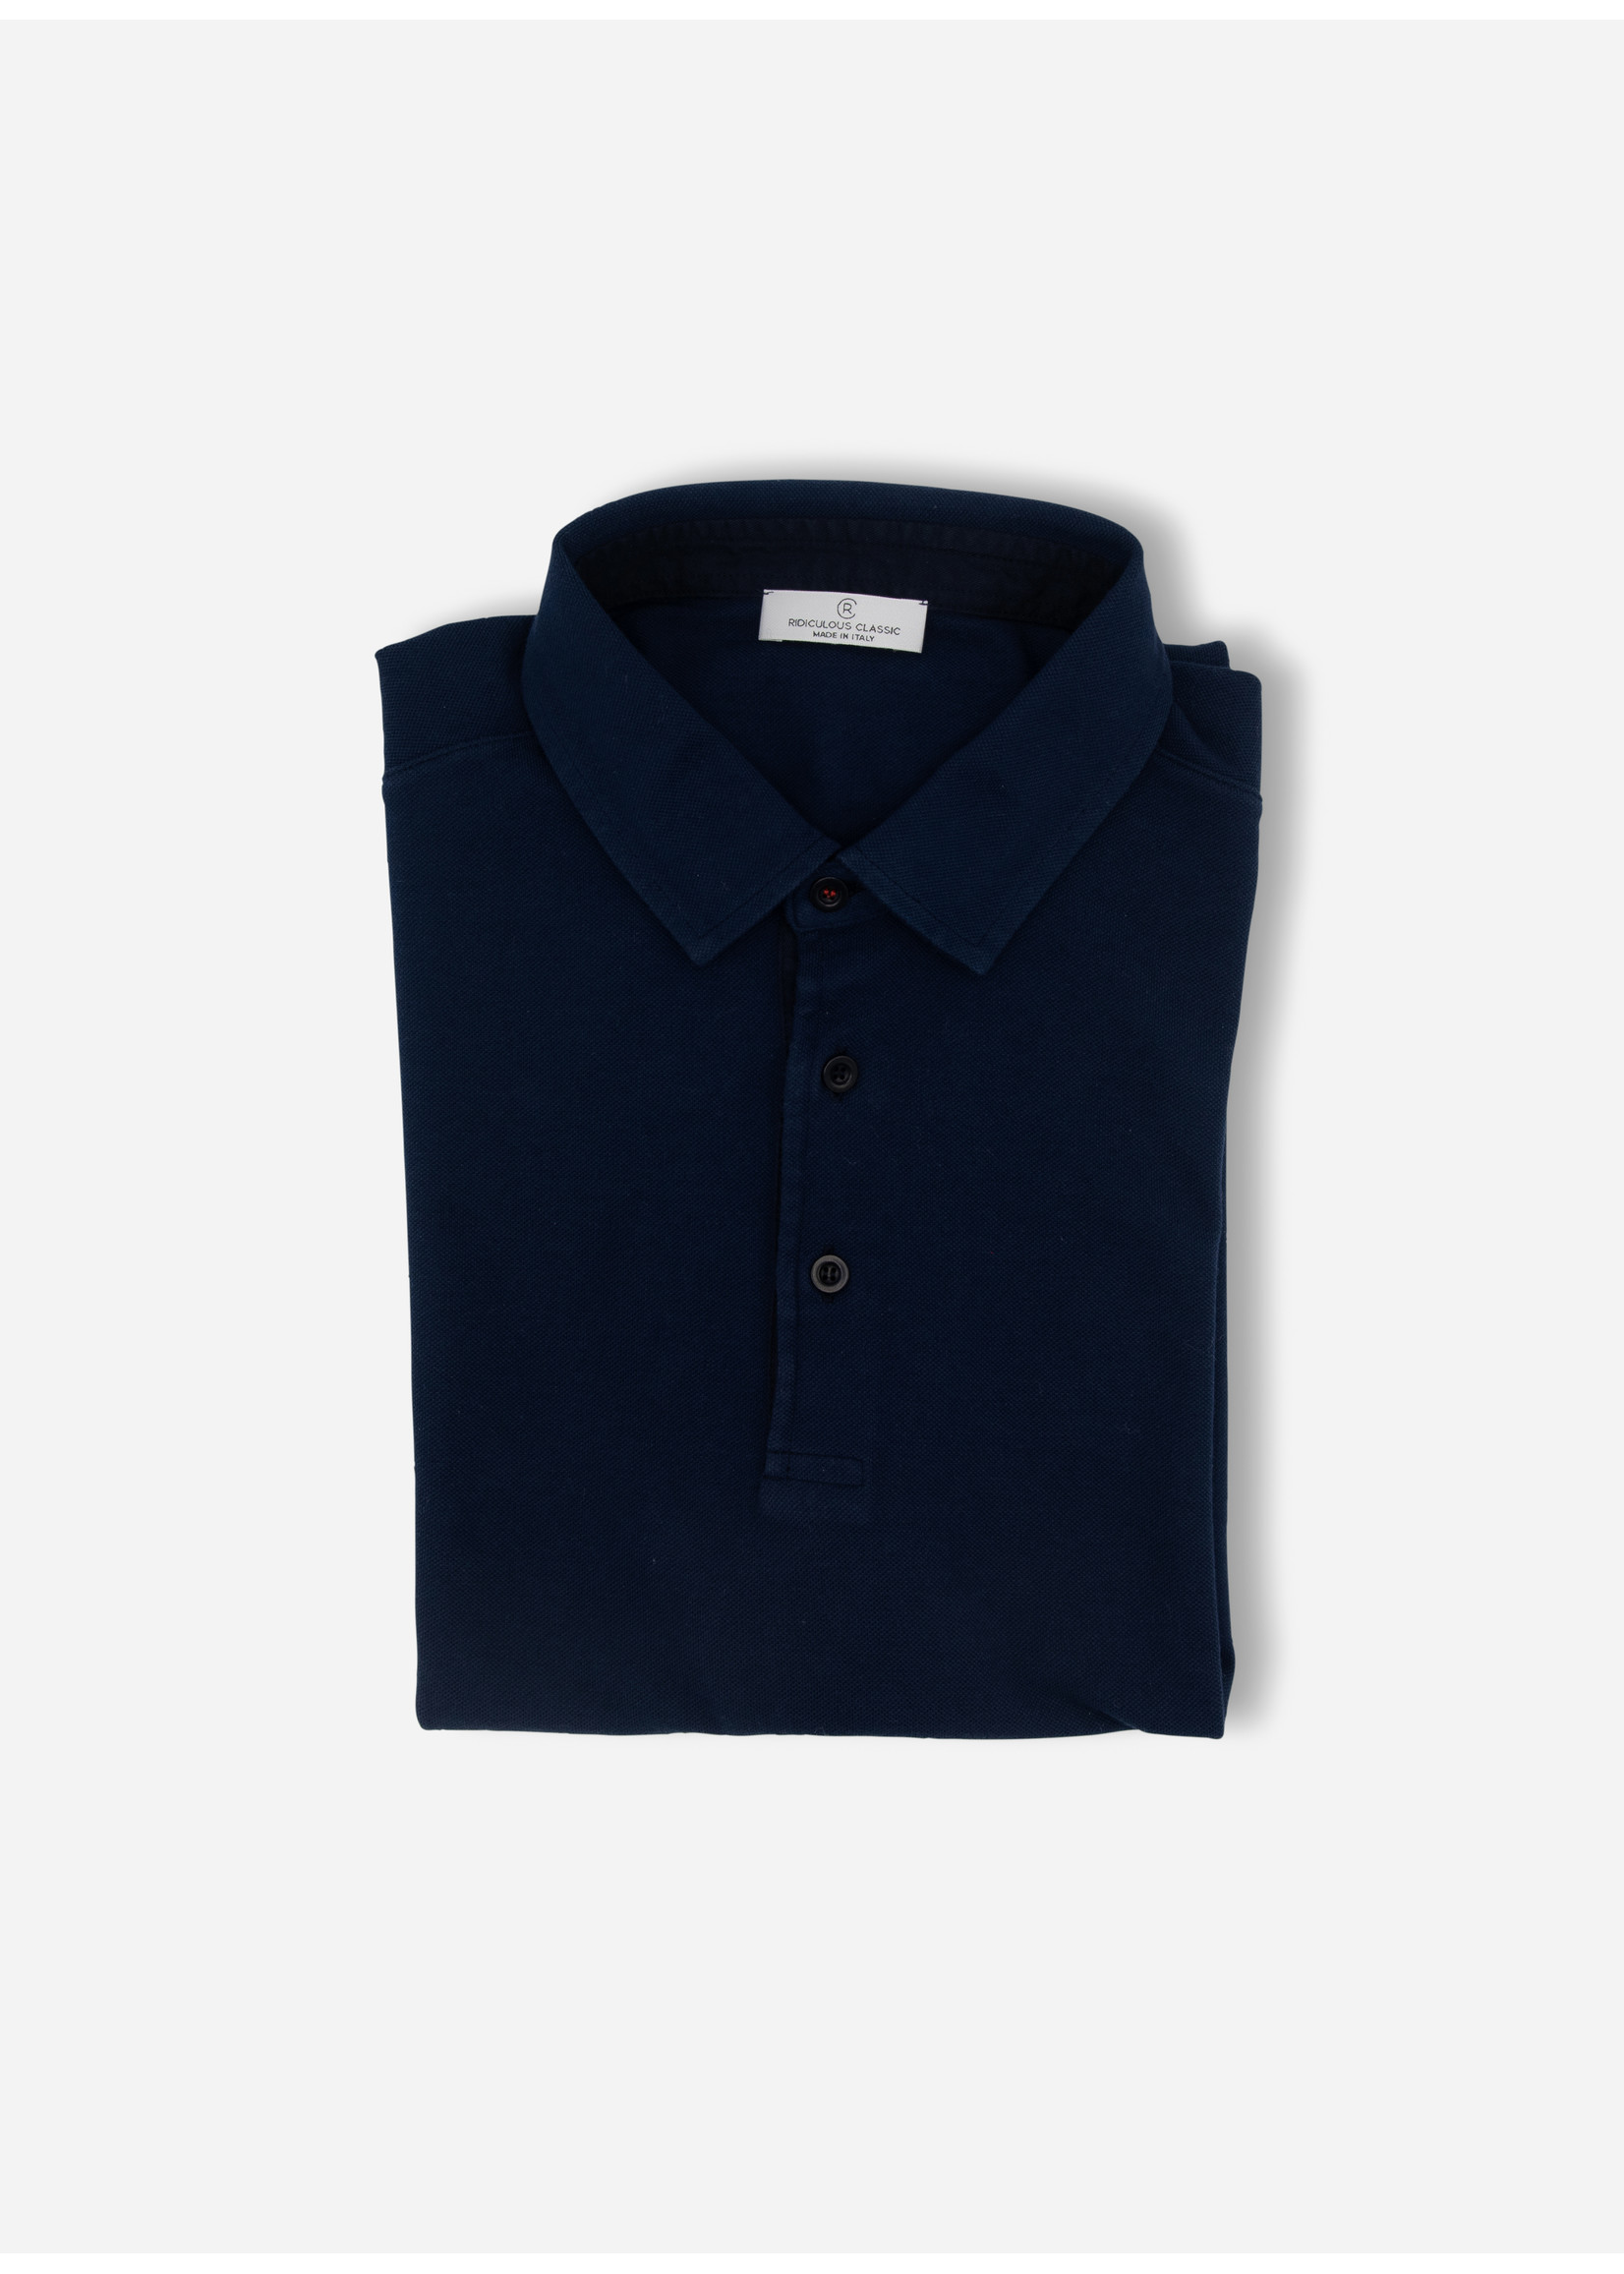 Ridiculous Classic Polo red button navy